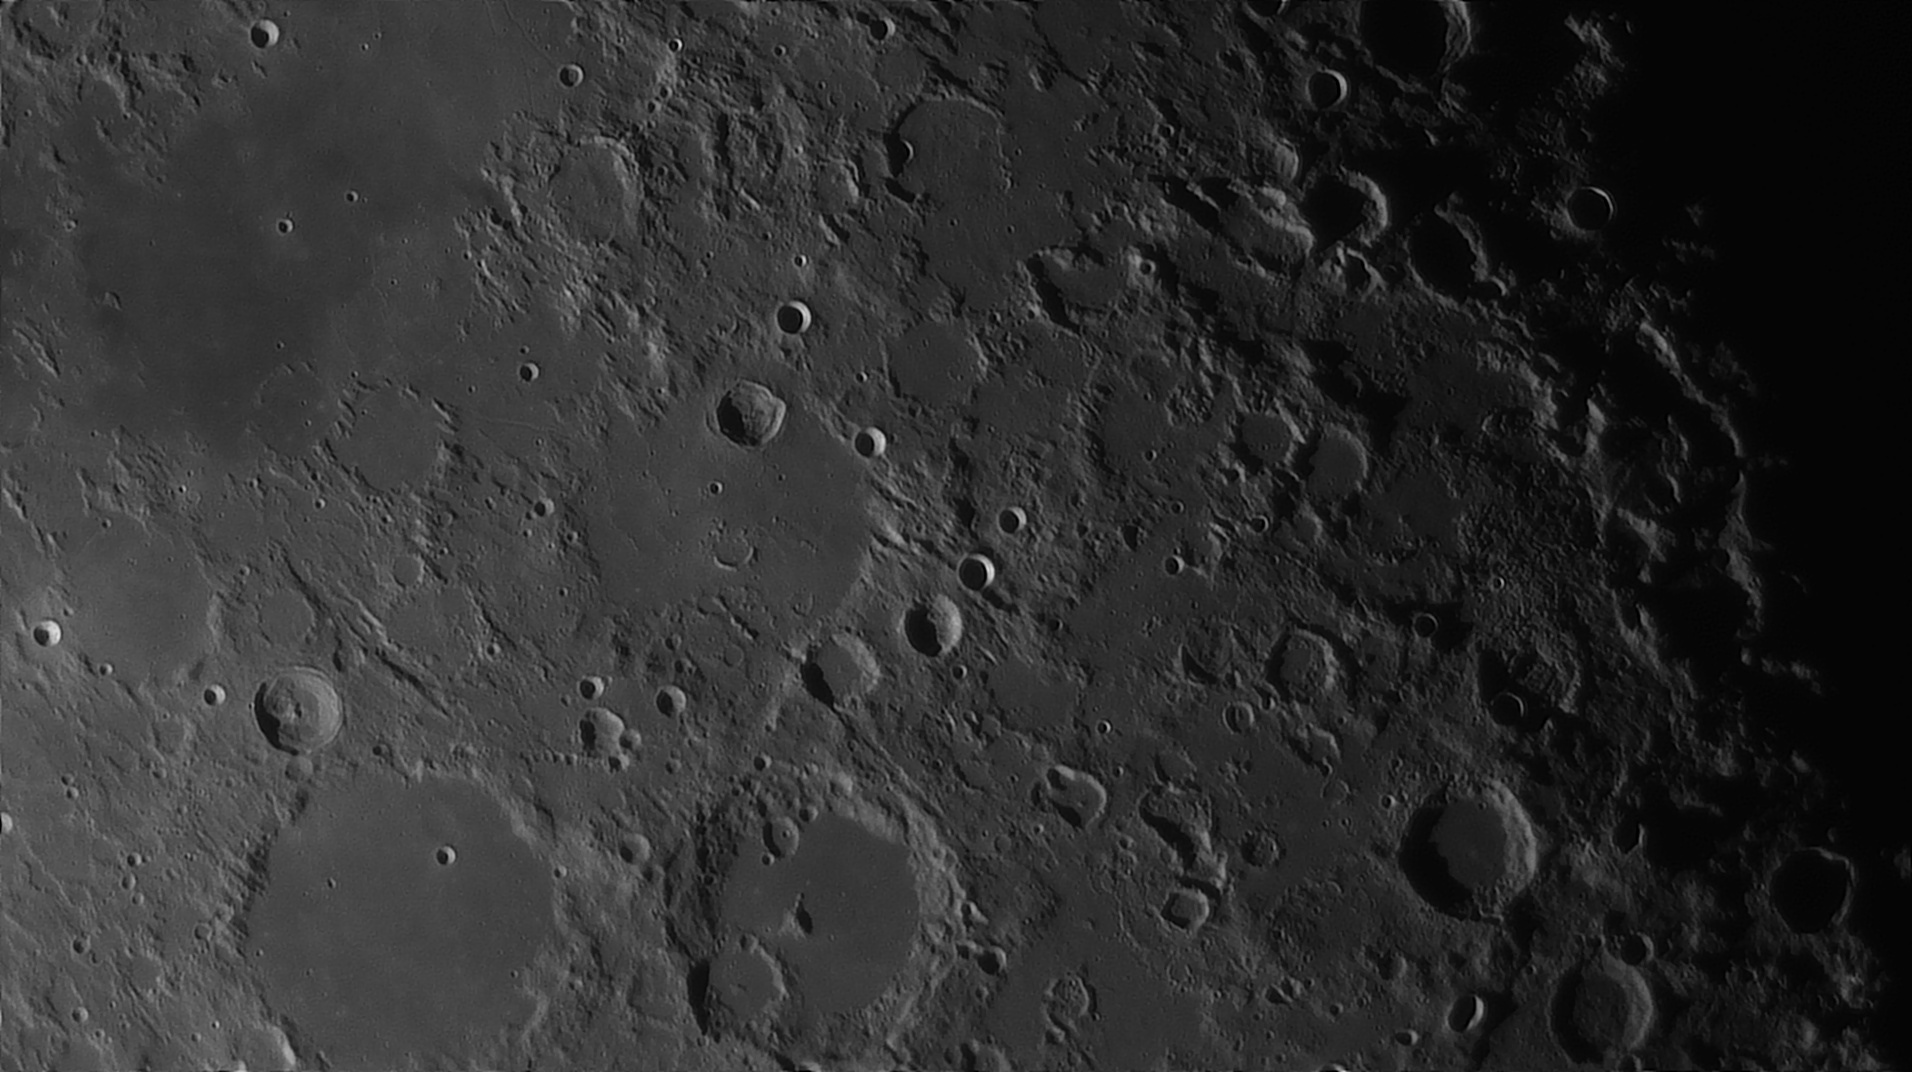 5e51959d3d8cf_Moon_054751_160120_ZWOASI290MM_Rouge_23A_AS_P35_lapl6_ap925_AI_Deconvolution_13--.jpg.d46db10d18d850a9ee91fe729f82a171.jpg